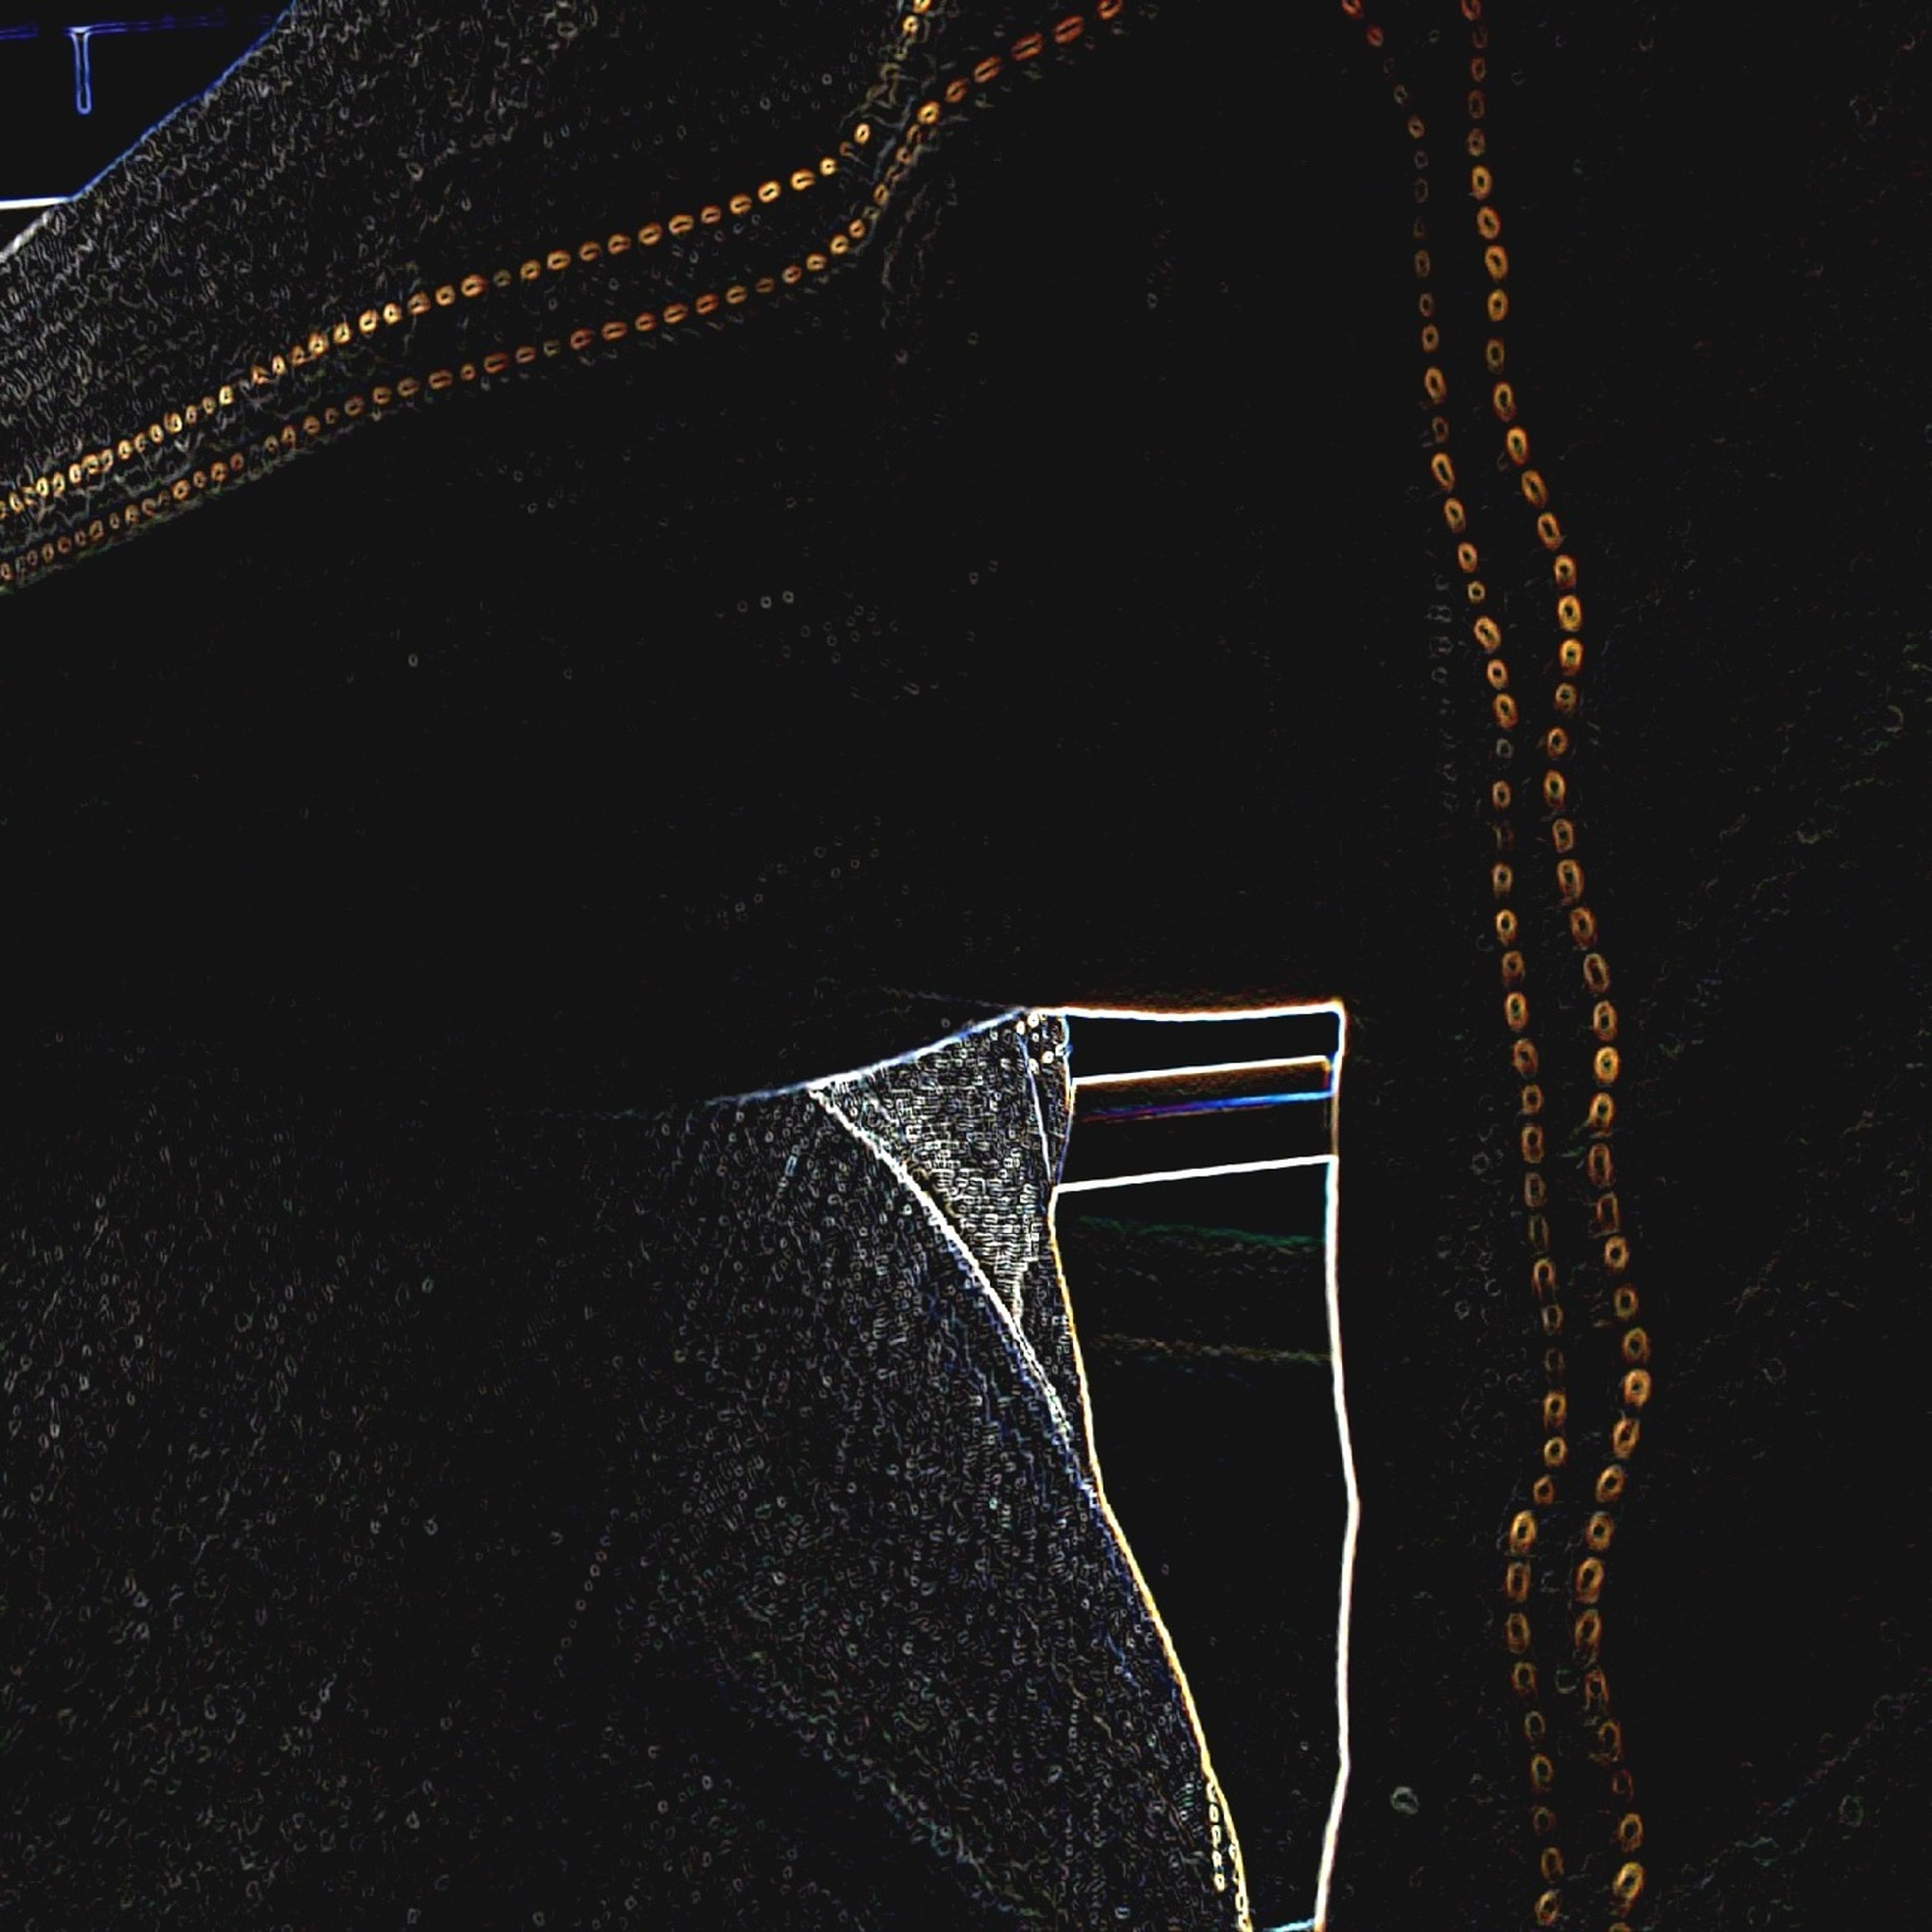 textile, night, one person, indoors, pattern, fabric, dark, close-up, transportation, absence, low section, person, part of, high angle view, illuminated, diminishing perspective, design, empty, shoe